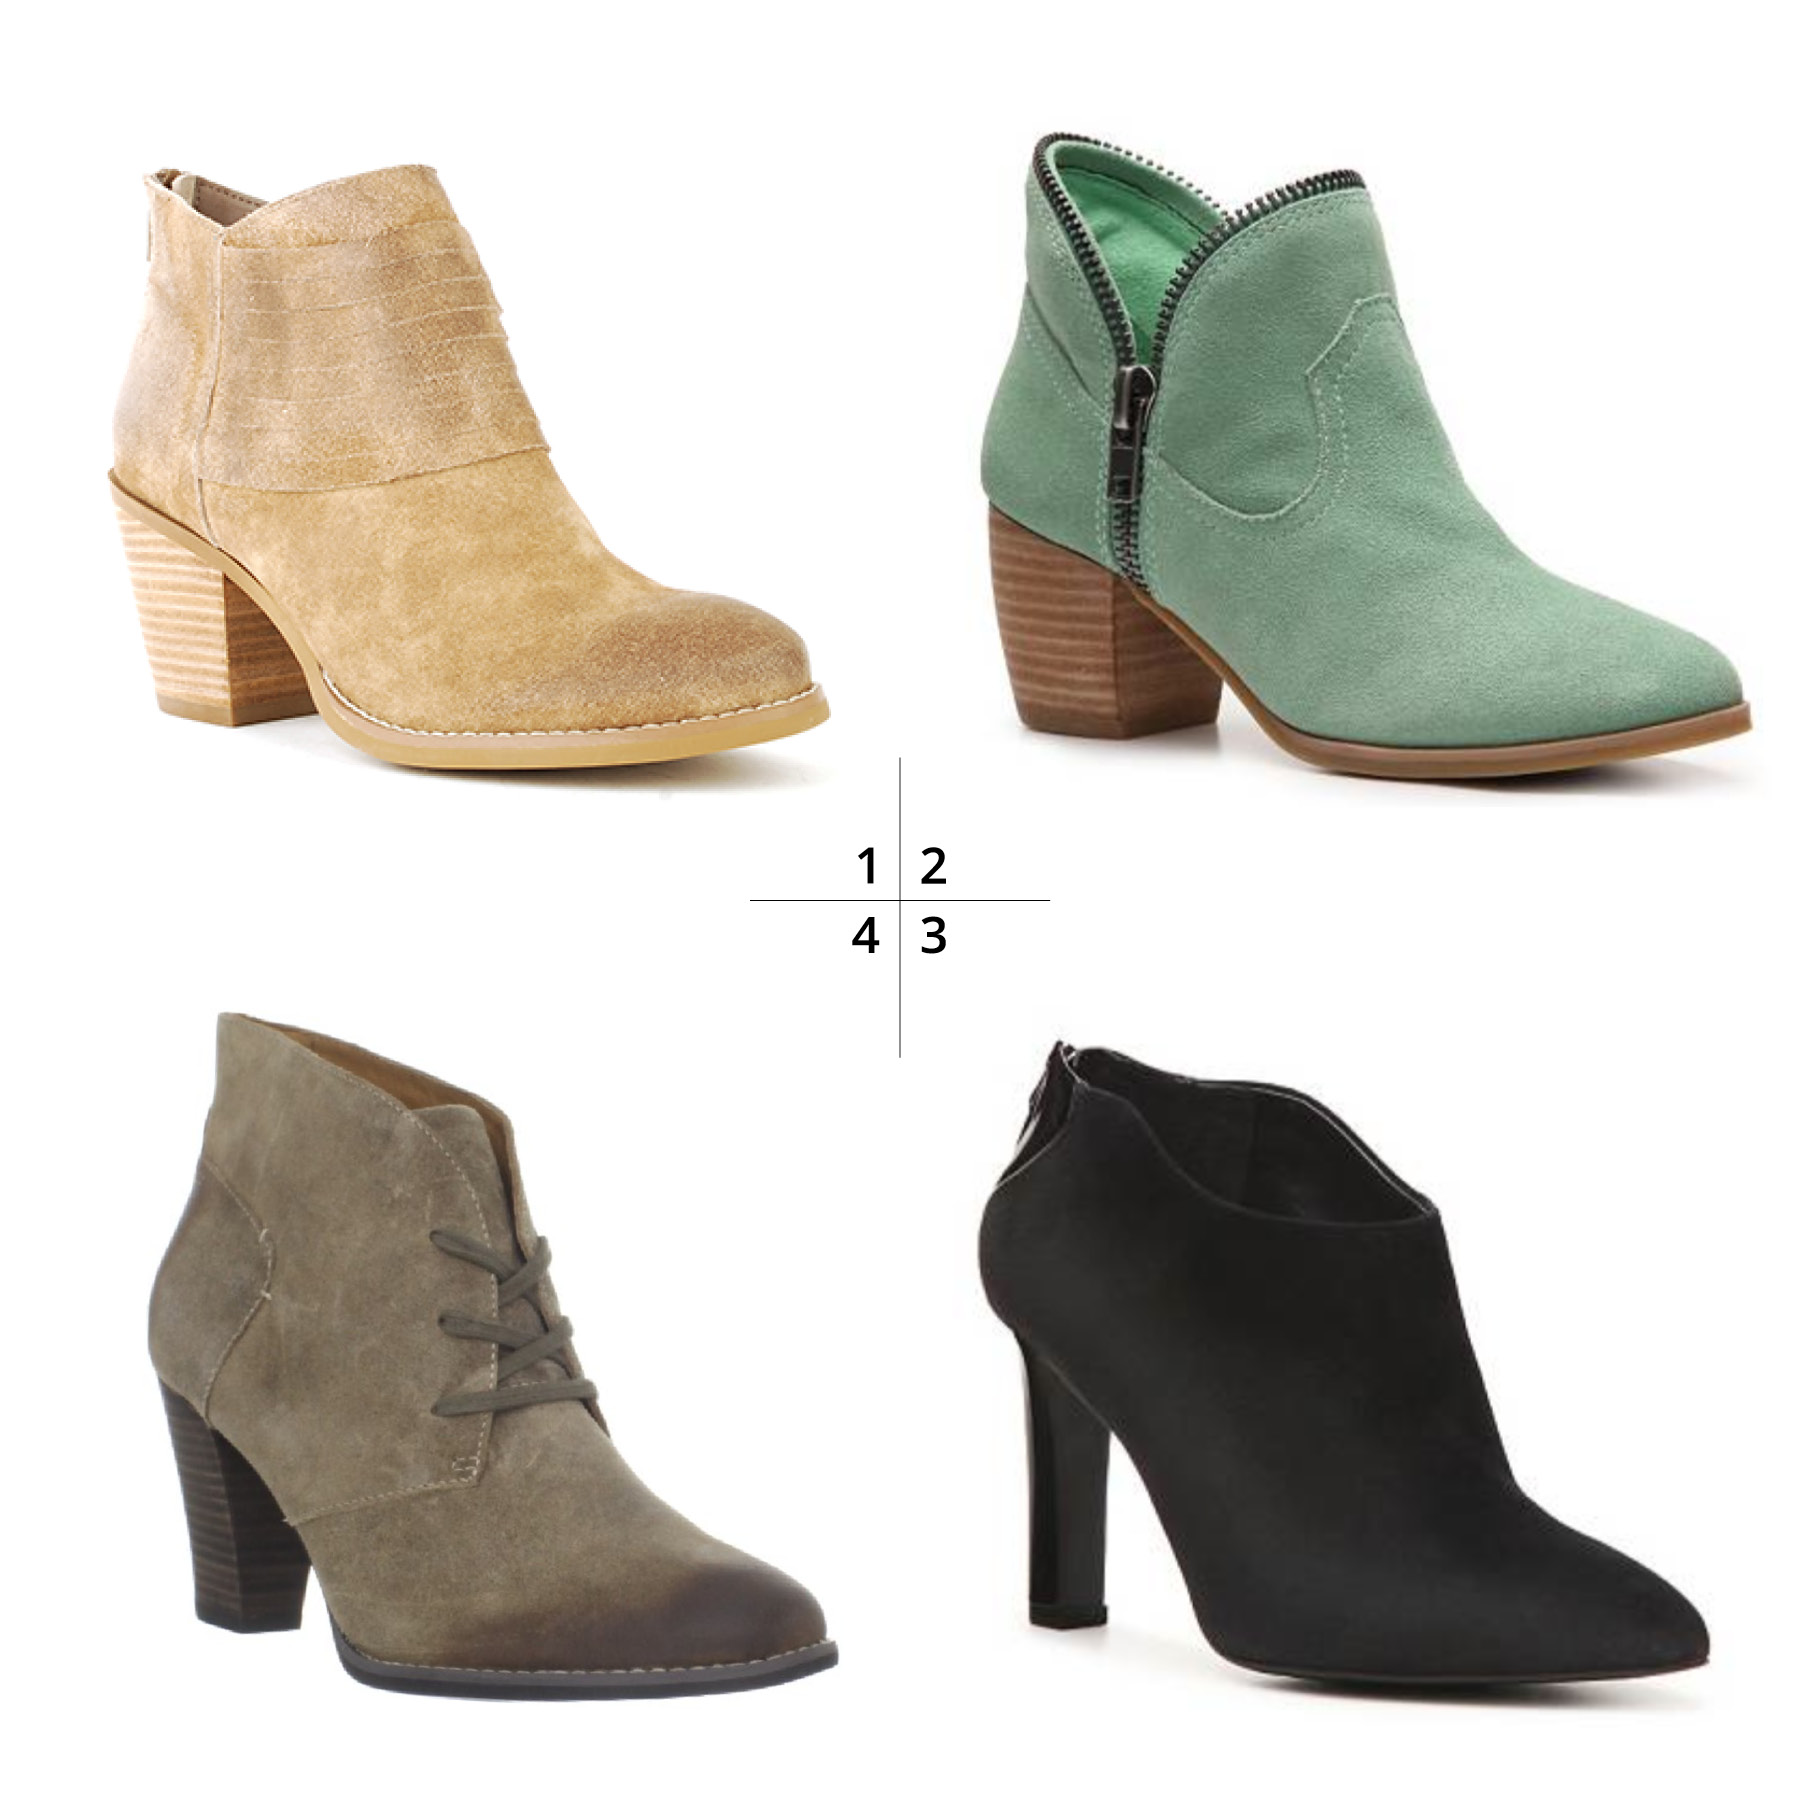 Clockwise, from top left:    1 Devoted by Seychelles  2 Strawberry Fields by Chinese Laundry  3 Vella by Franco Sarto  4 Heath Wren by Clarks